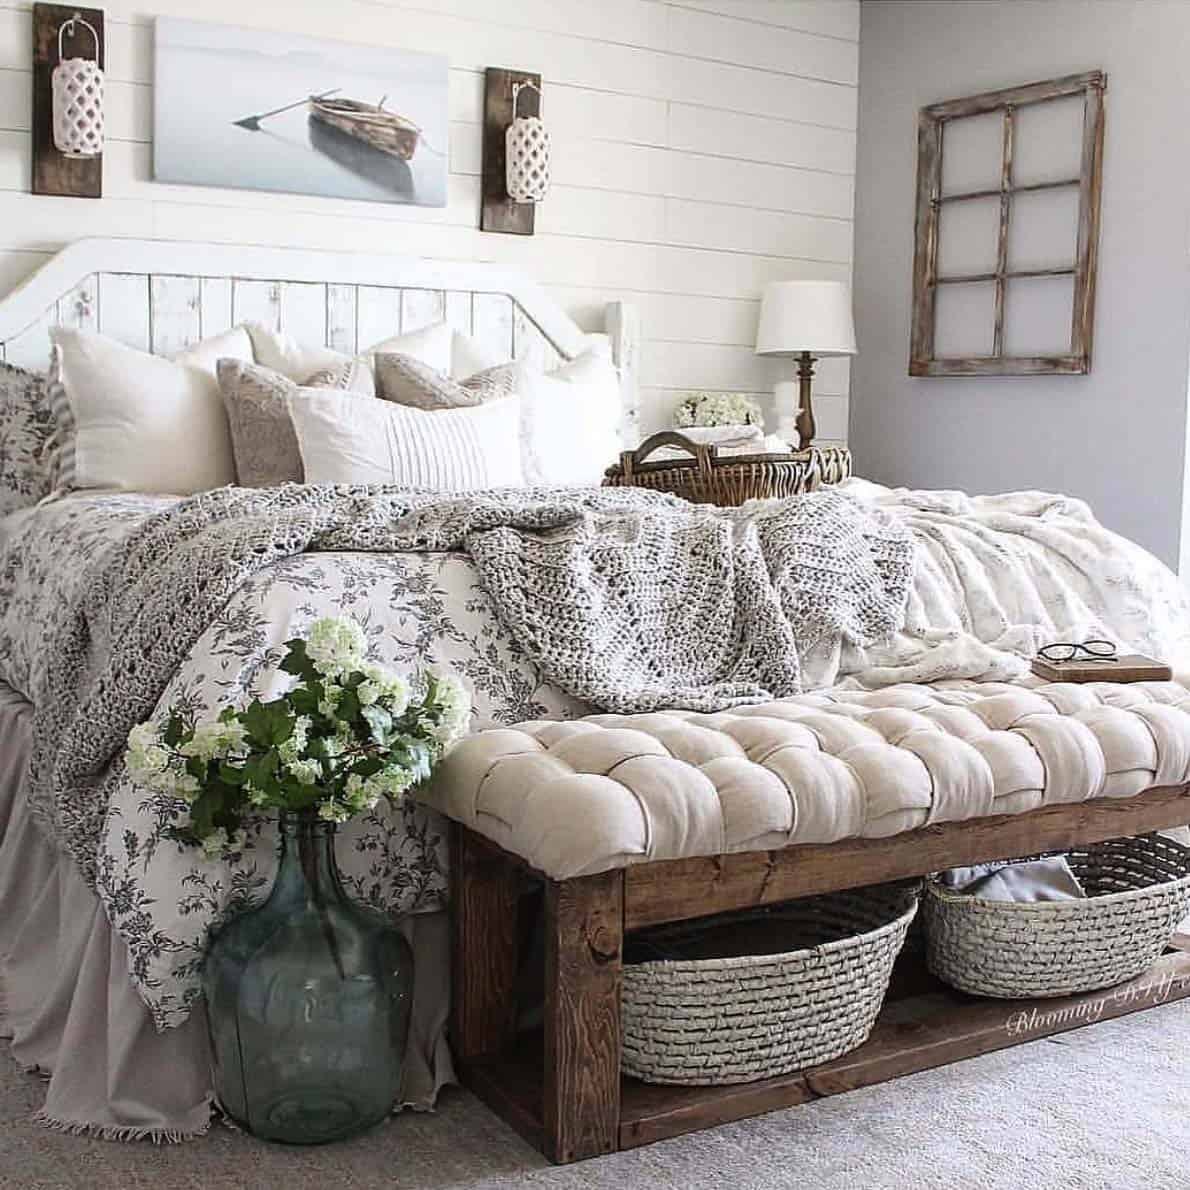 fresh-ideas-for-infusing-spring-into-your-home-bedroom